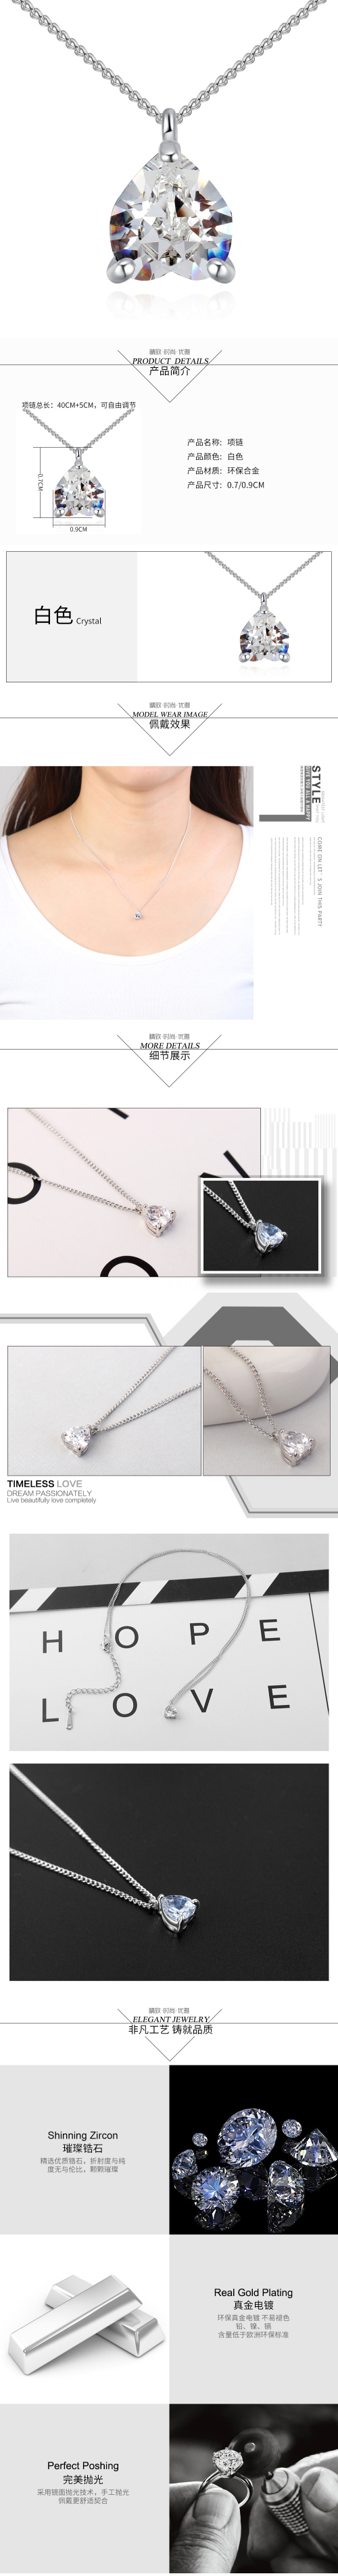 AAA micro-inlaid zircon necklace - heart love (white) NHKSE28801